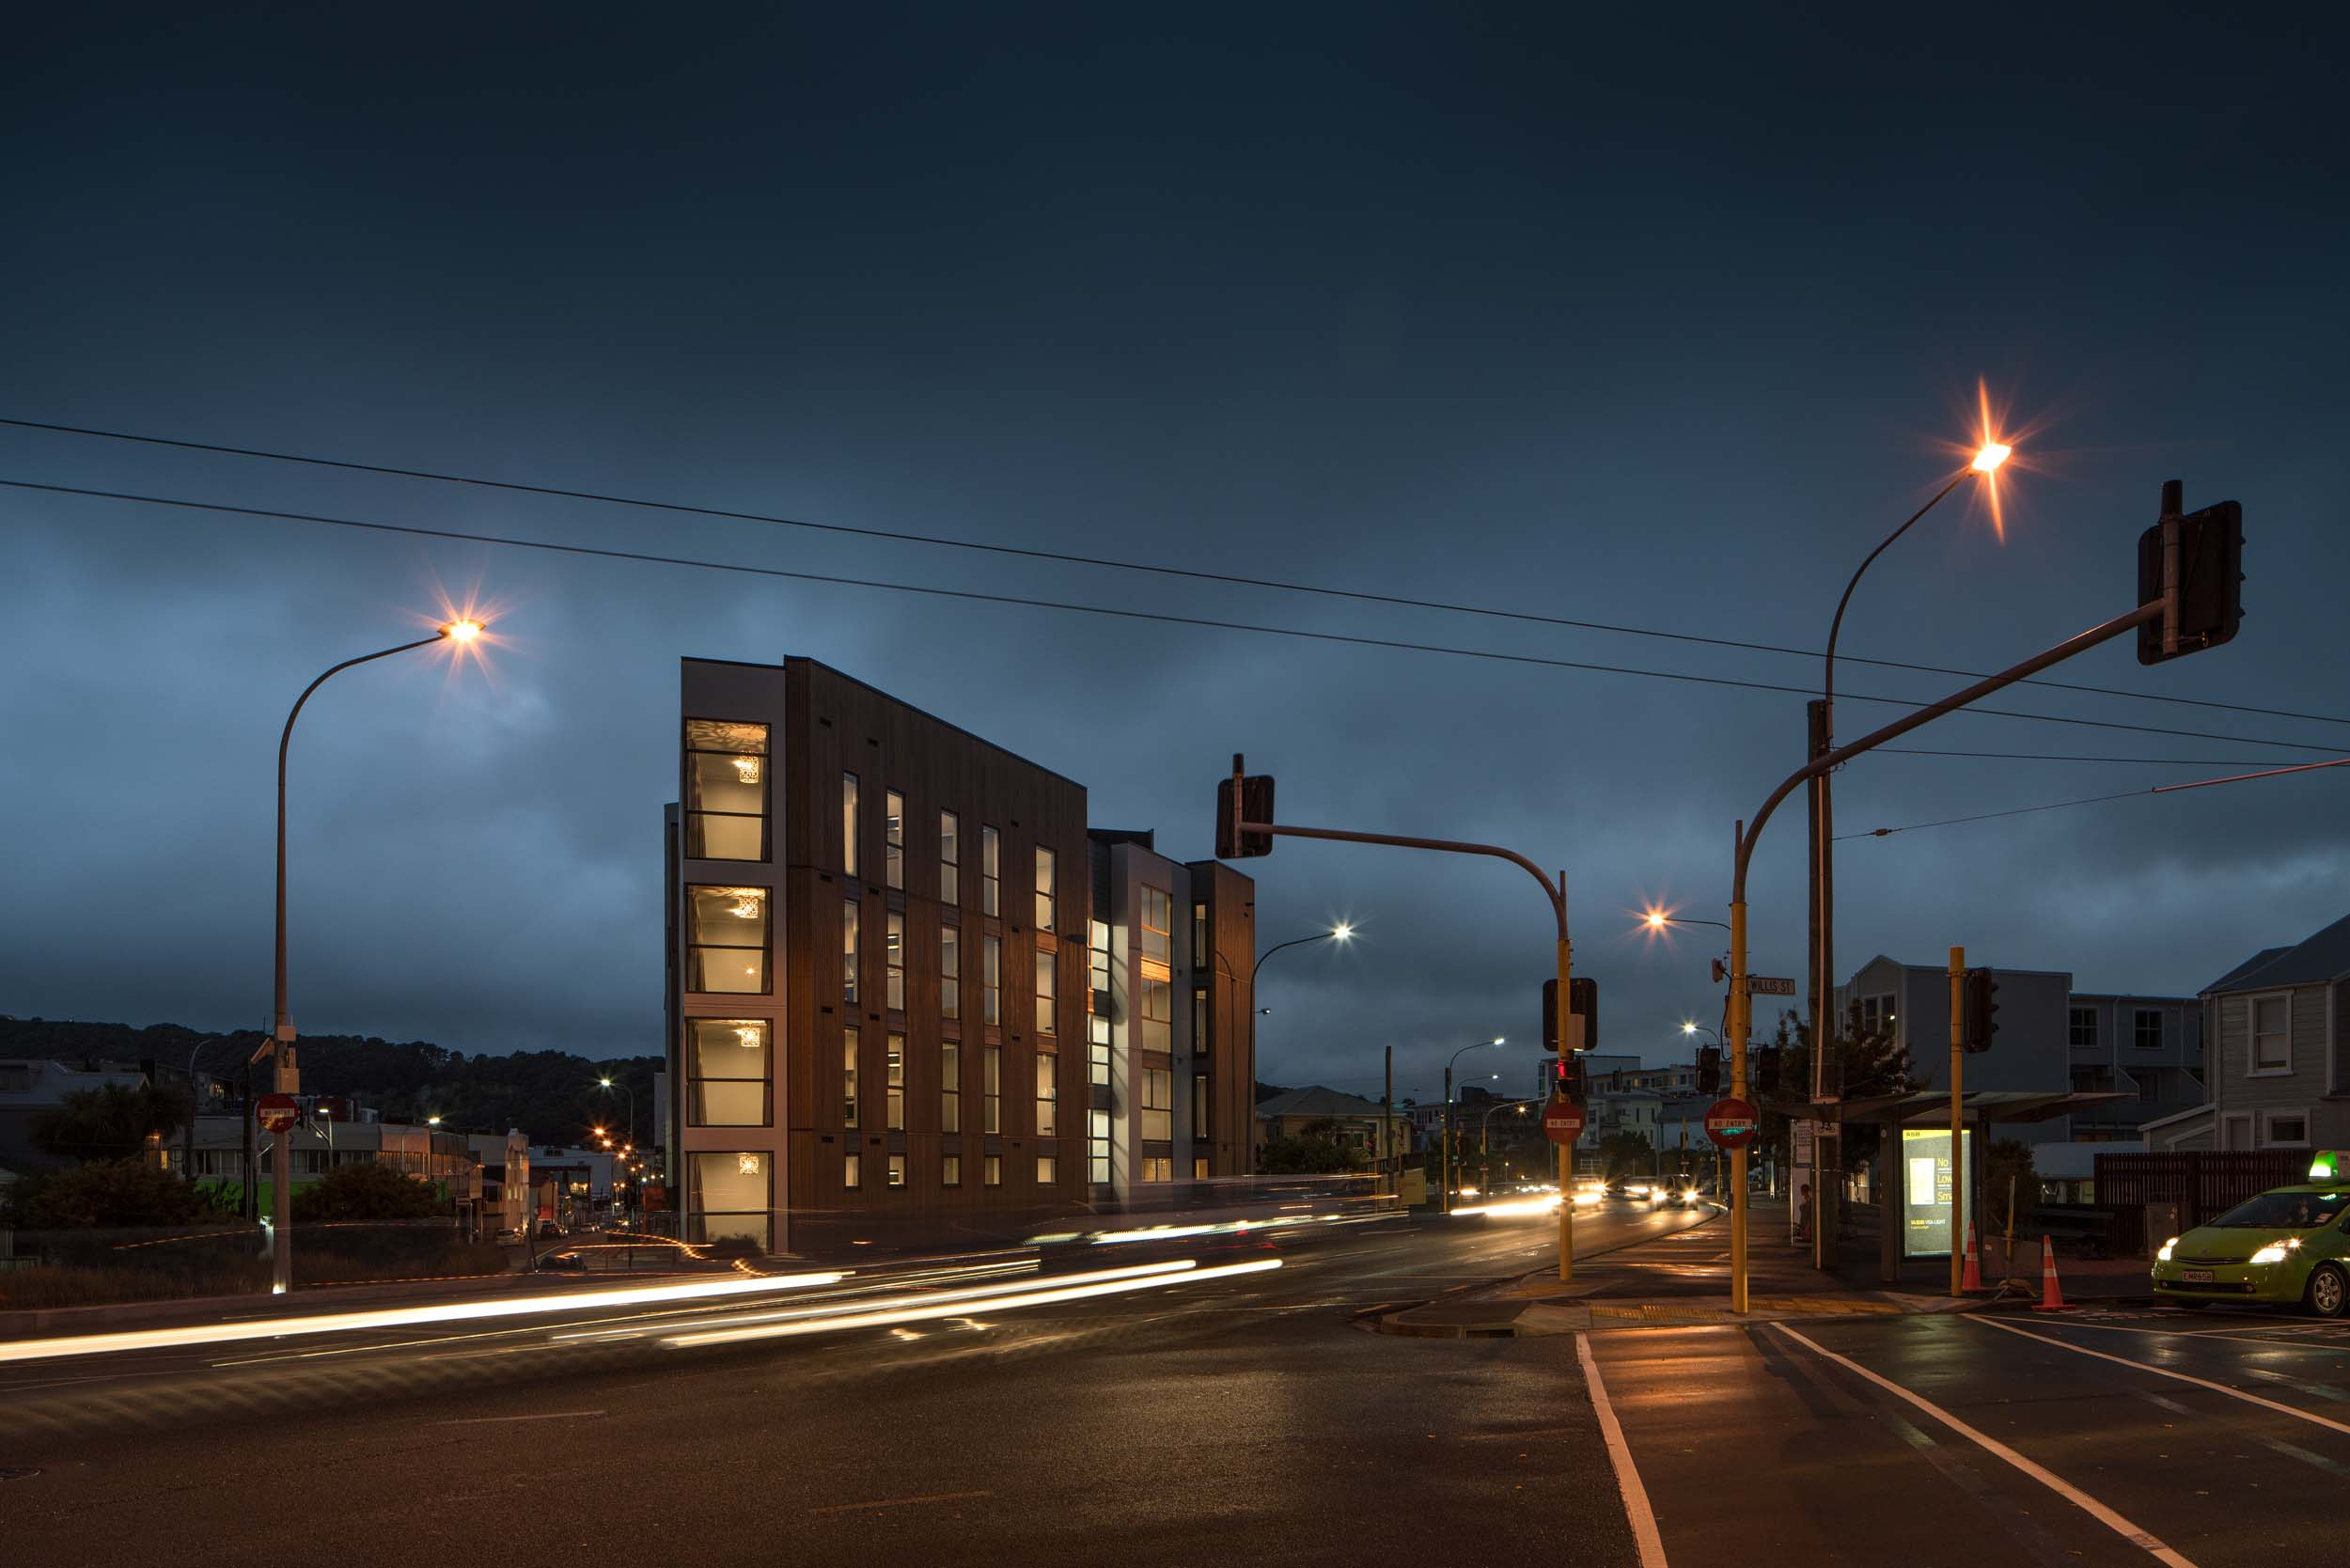 83 ABEL SMITH STREET BY ARCHAUS. EXTERIOR NIGHT TIME-LAPSE SHOT